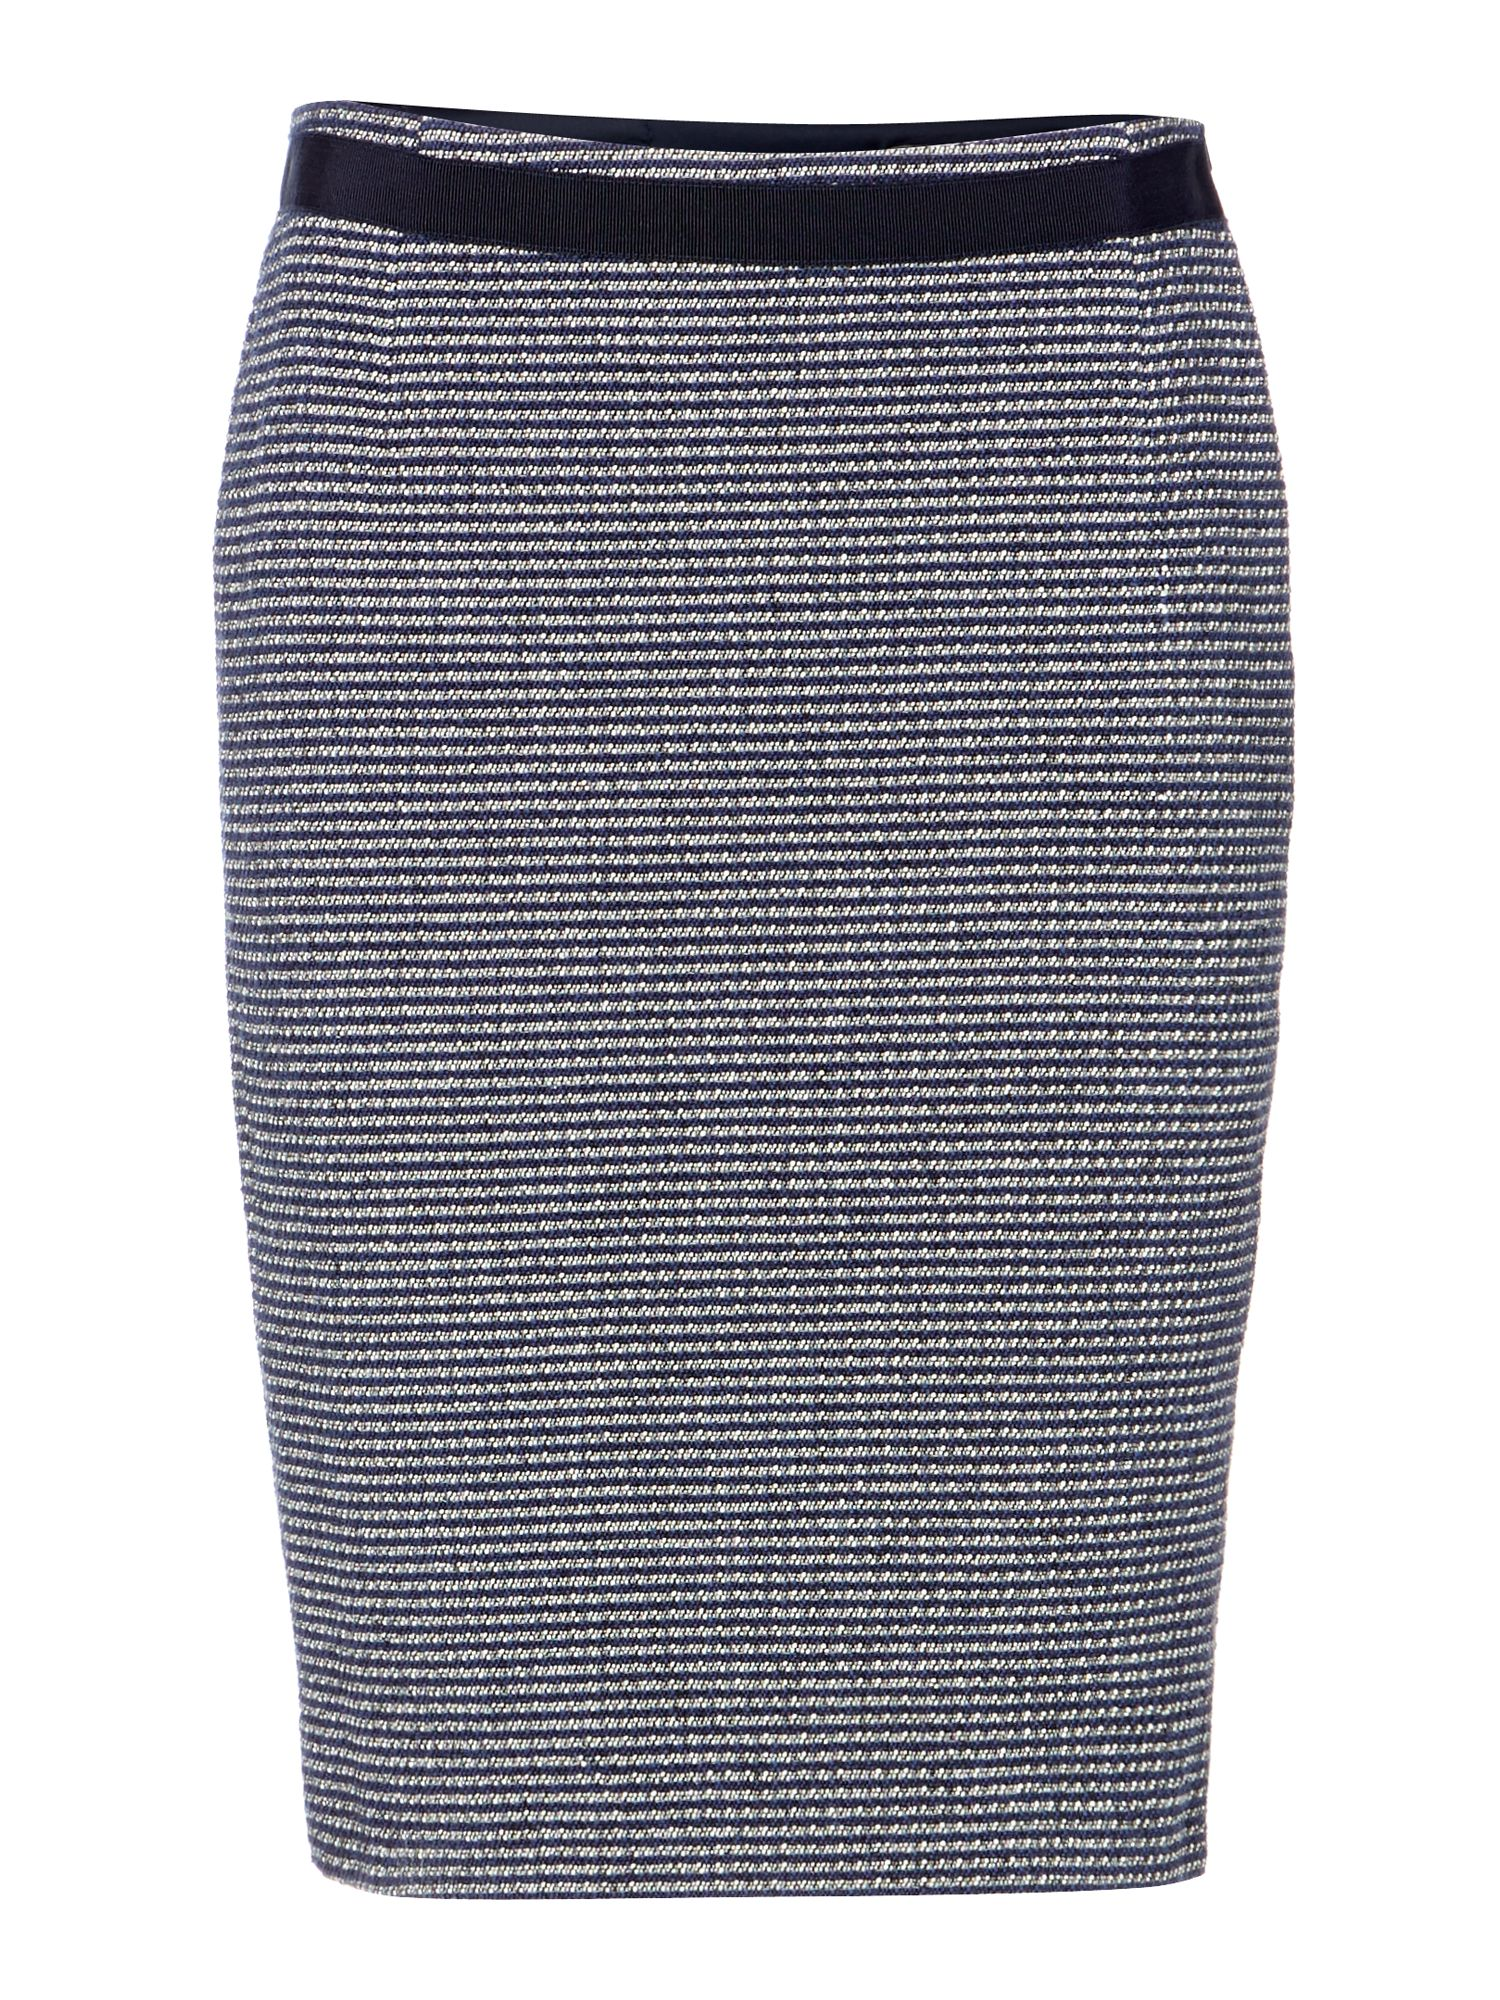 Acqua boucle pencil skirt